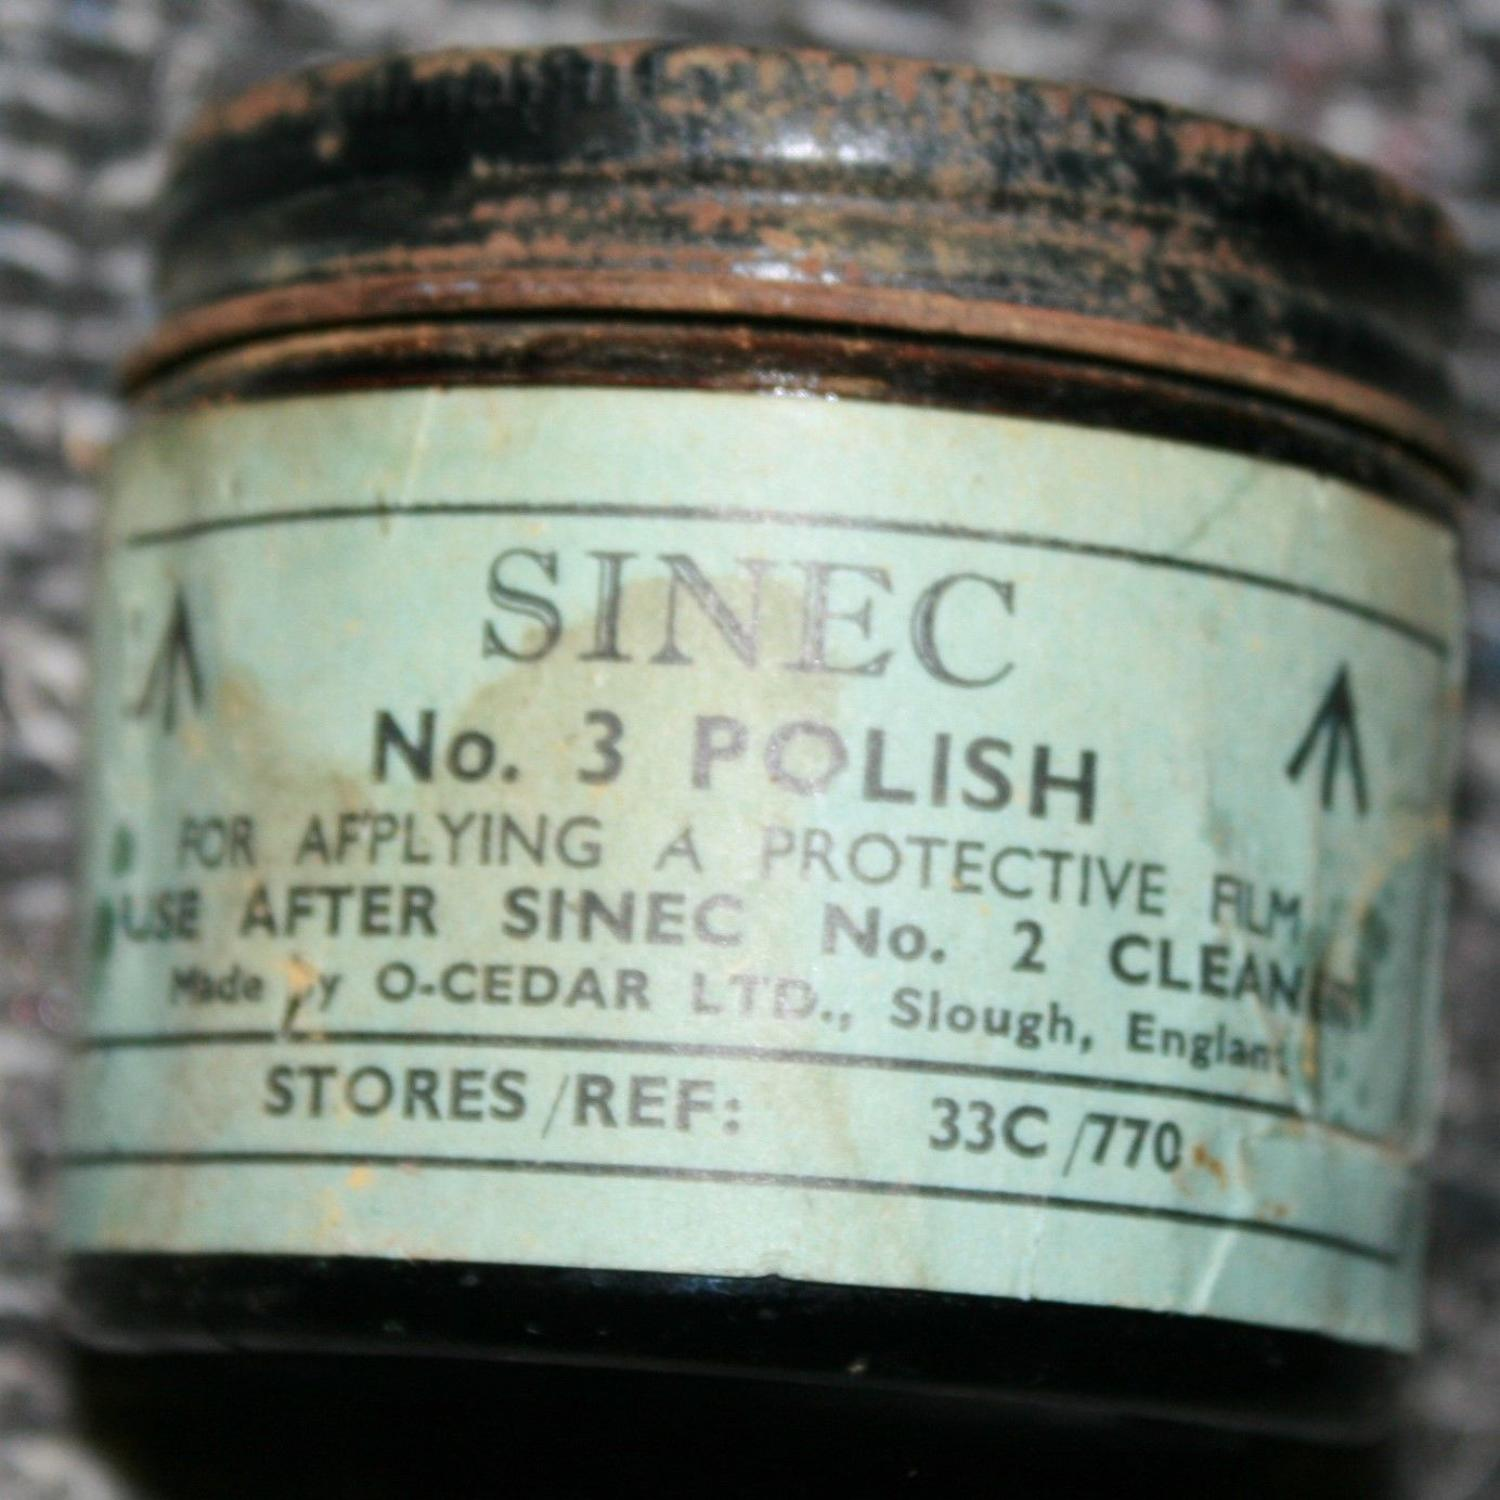 A WWII GLASS JAR OF THE RAF SINEC NO3 POLISH